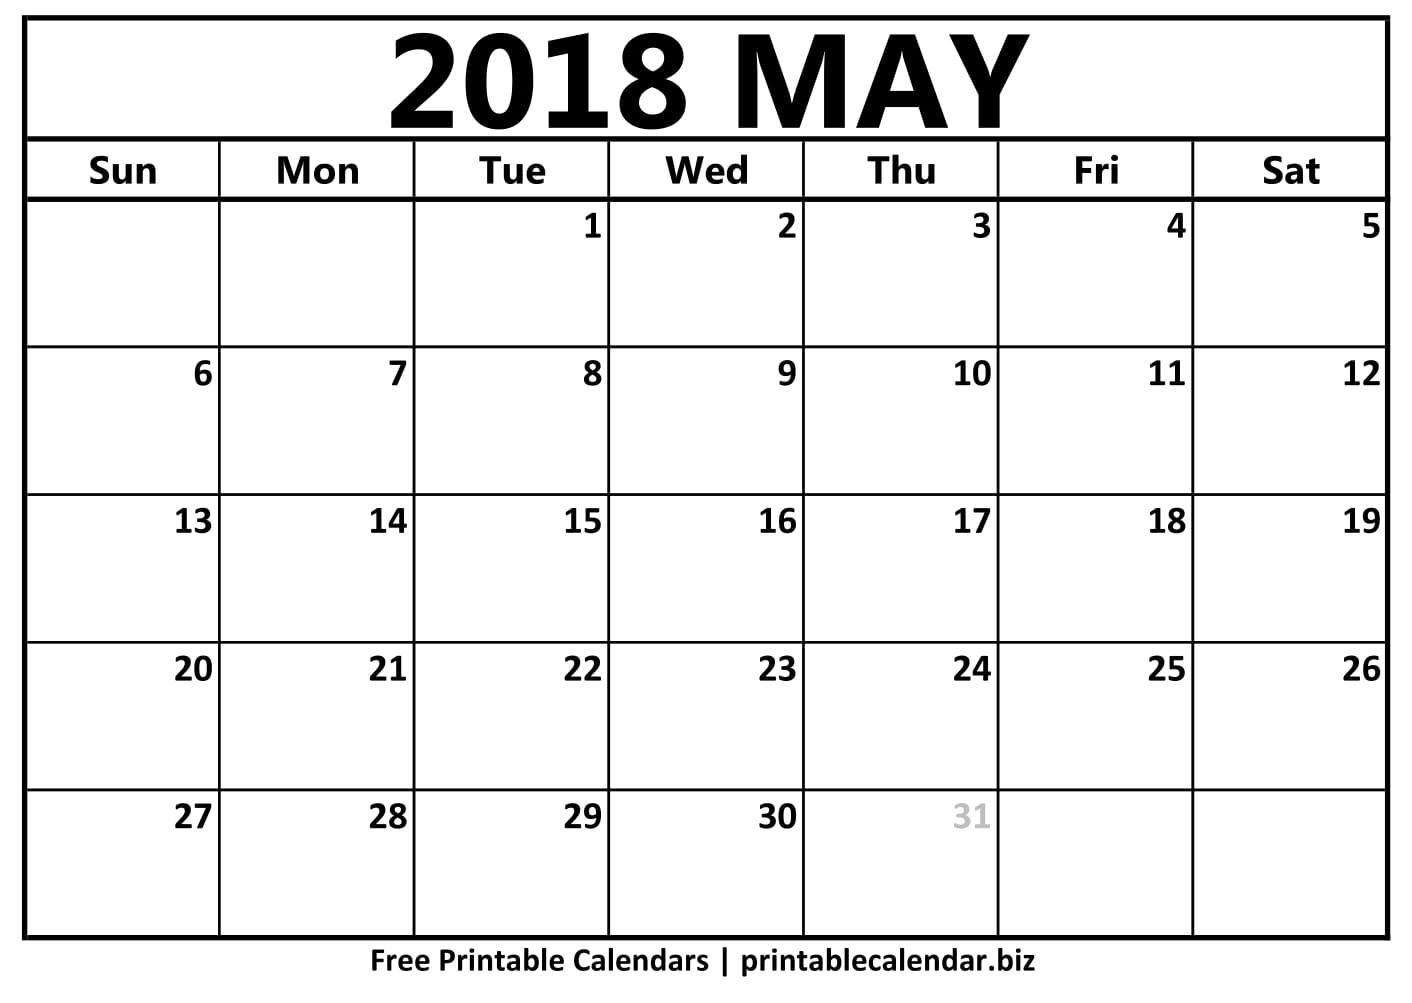 2018 May Calendar Vertical